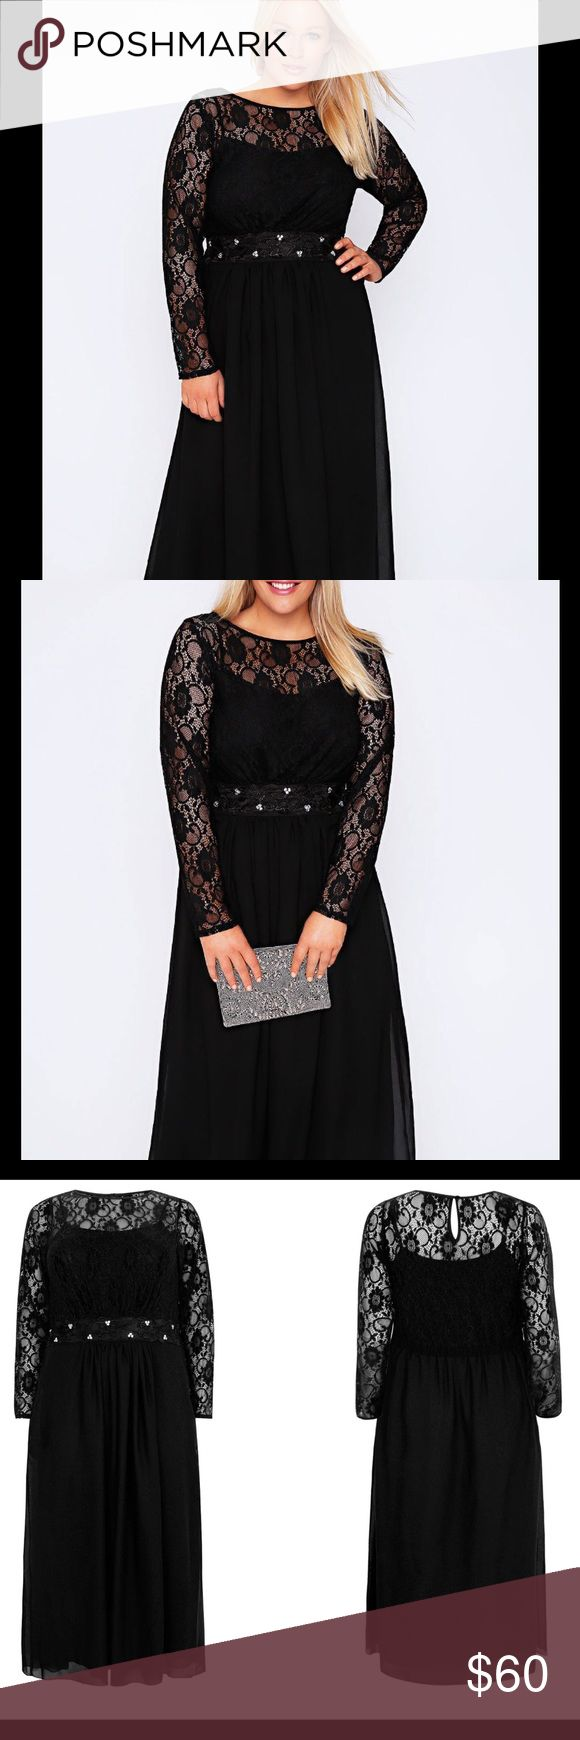 "Black Lace Embellished Maxi Dress Plus Size Upper: 90% Nylon, 10% Elastane, Skirt: 100% Polyester Length from (approx): 150cm/59"" Plus Sizes: 30 Machine Washable (Model is 5'10"" and size 16) Plus size black long sleeved maxi dress with floral overlay to the top and silver bead embellishment to the waist. Has a scoop neckline with a keyhole button fastened detail to the back and a jersey underlayer to the chiffon skirt. This elegant dress can be worn with heels and statement jewellery for any…"